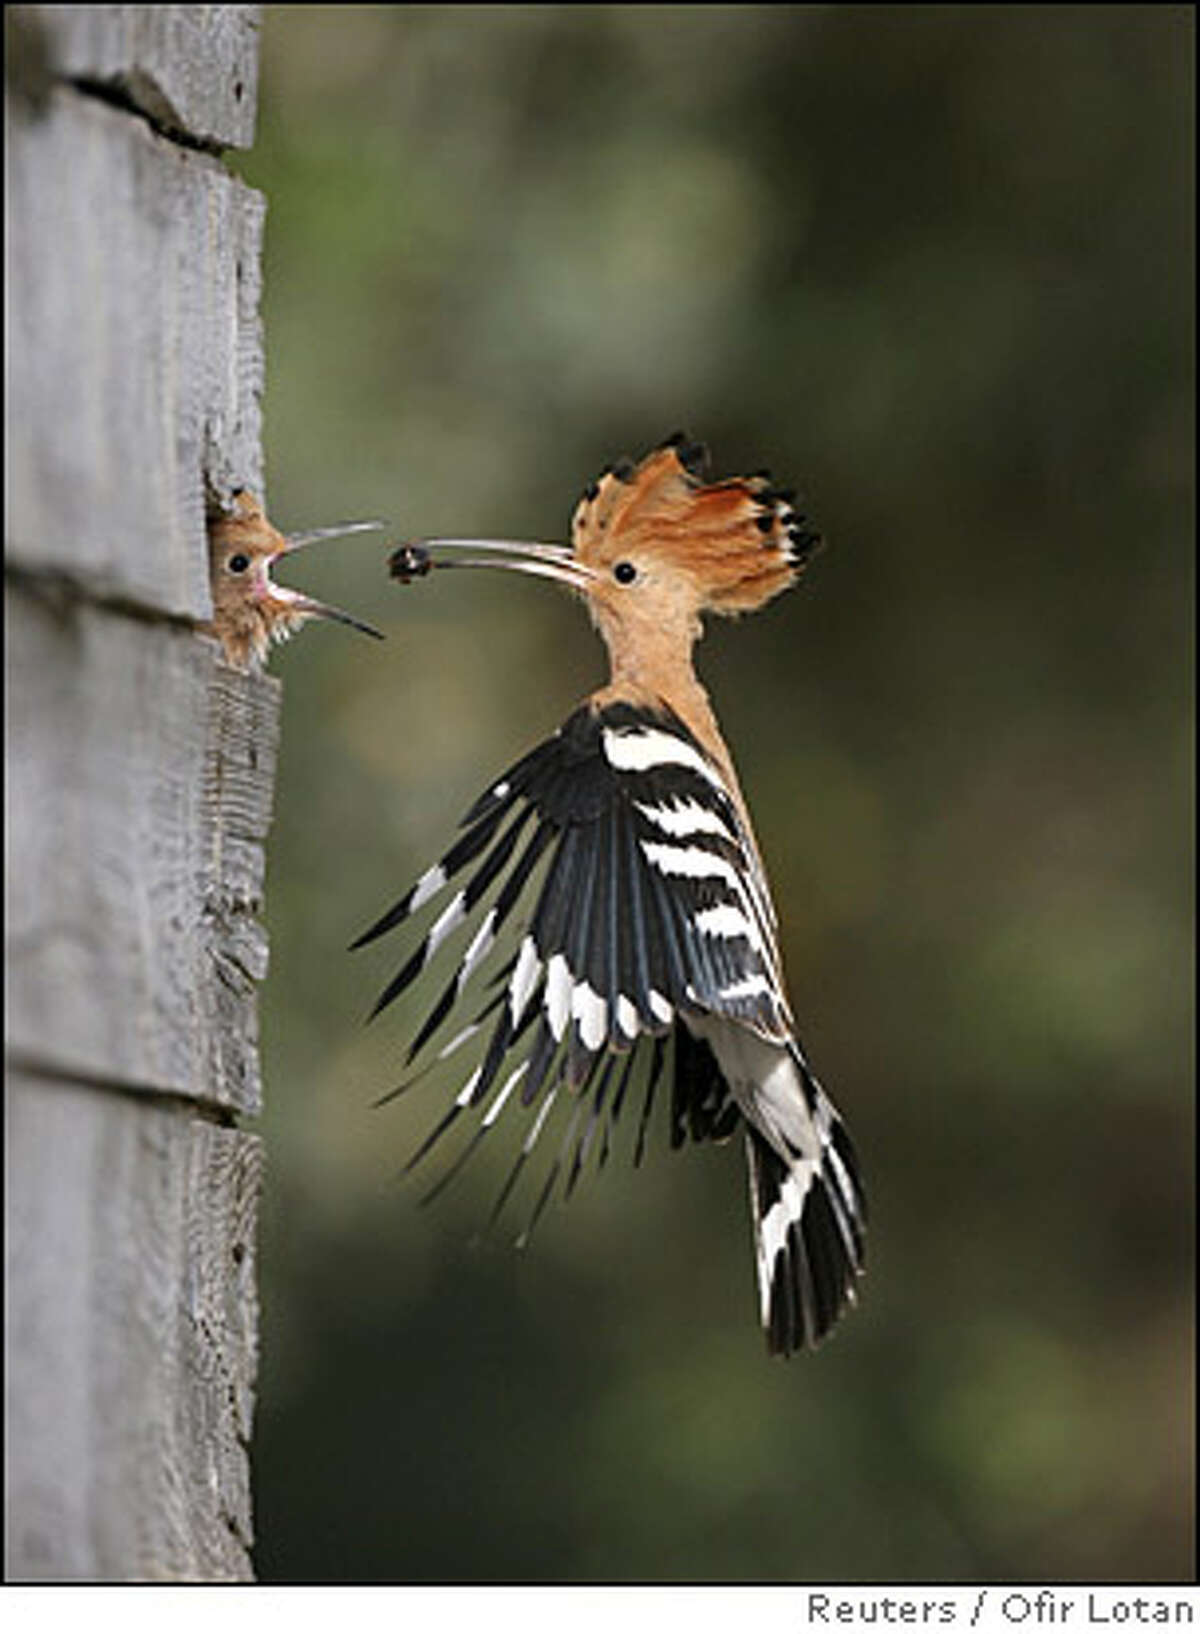 Hoopoe bird feeds its nestling in undated handout picture